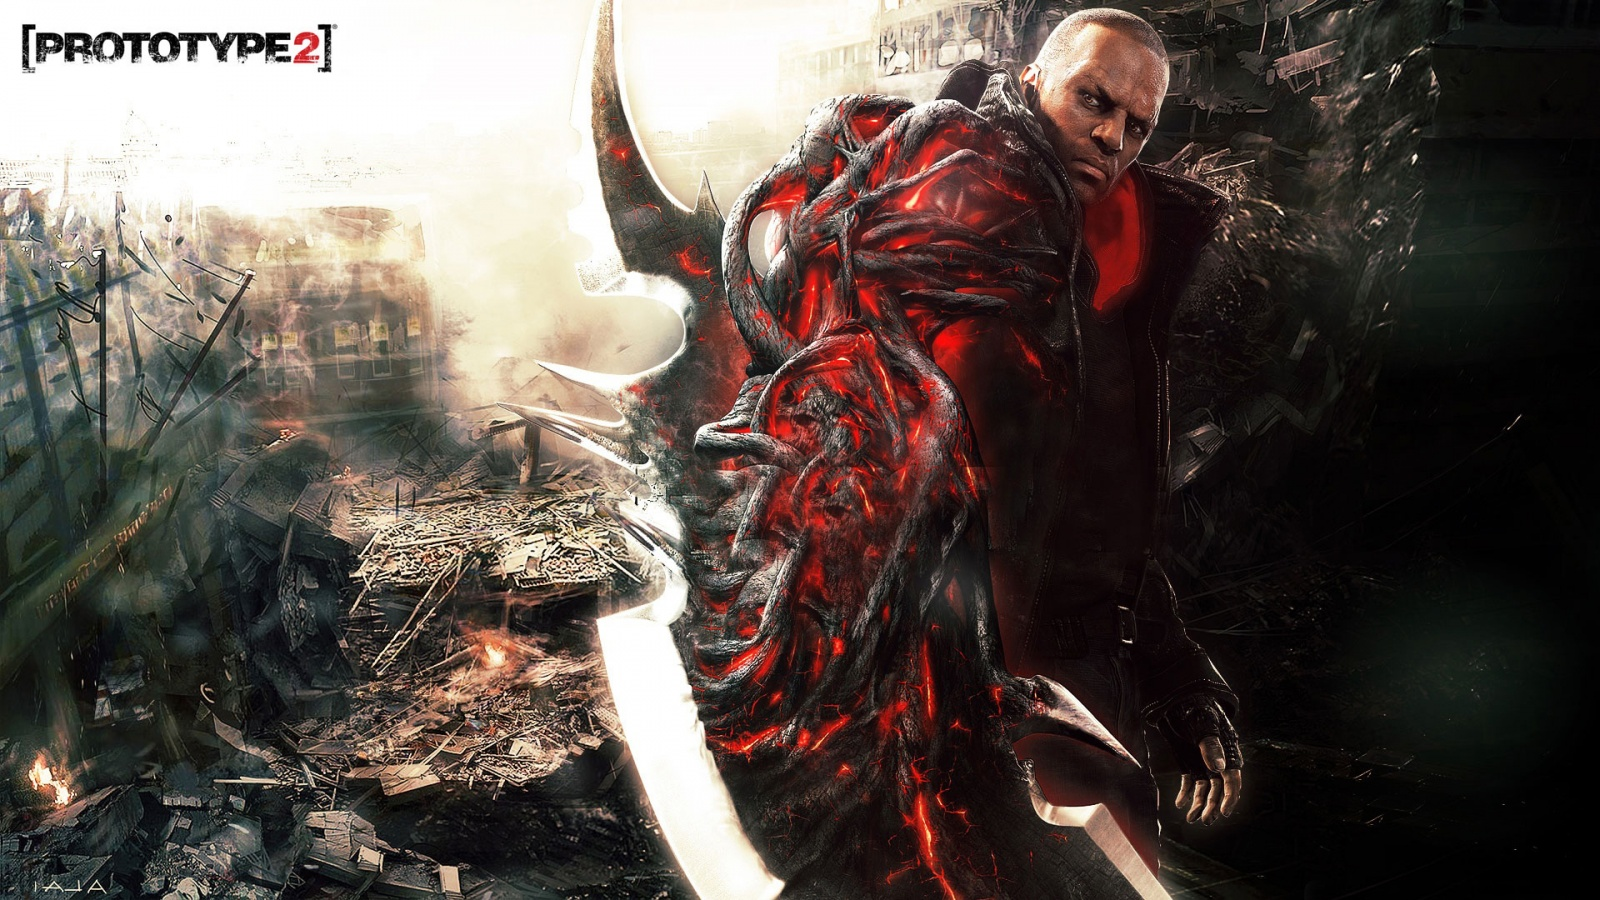 prototype 2 free download highly compressed